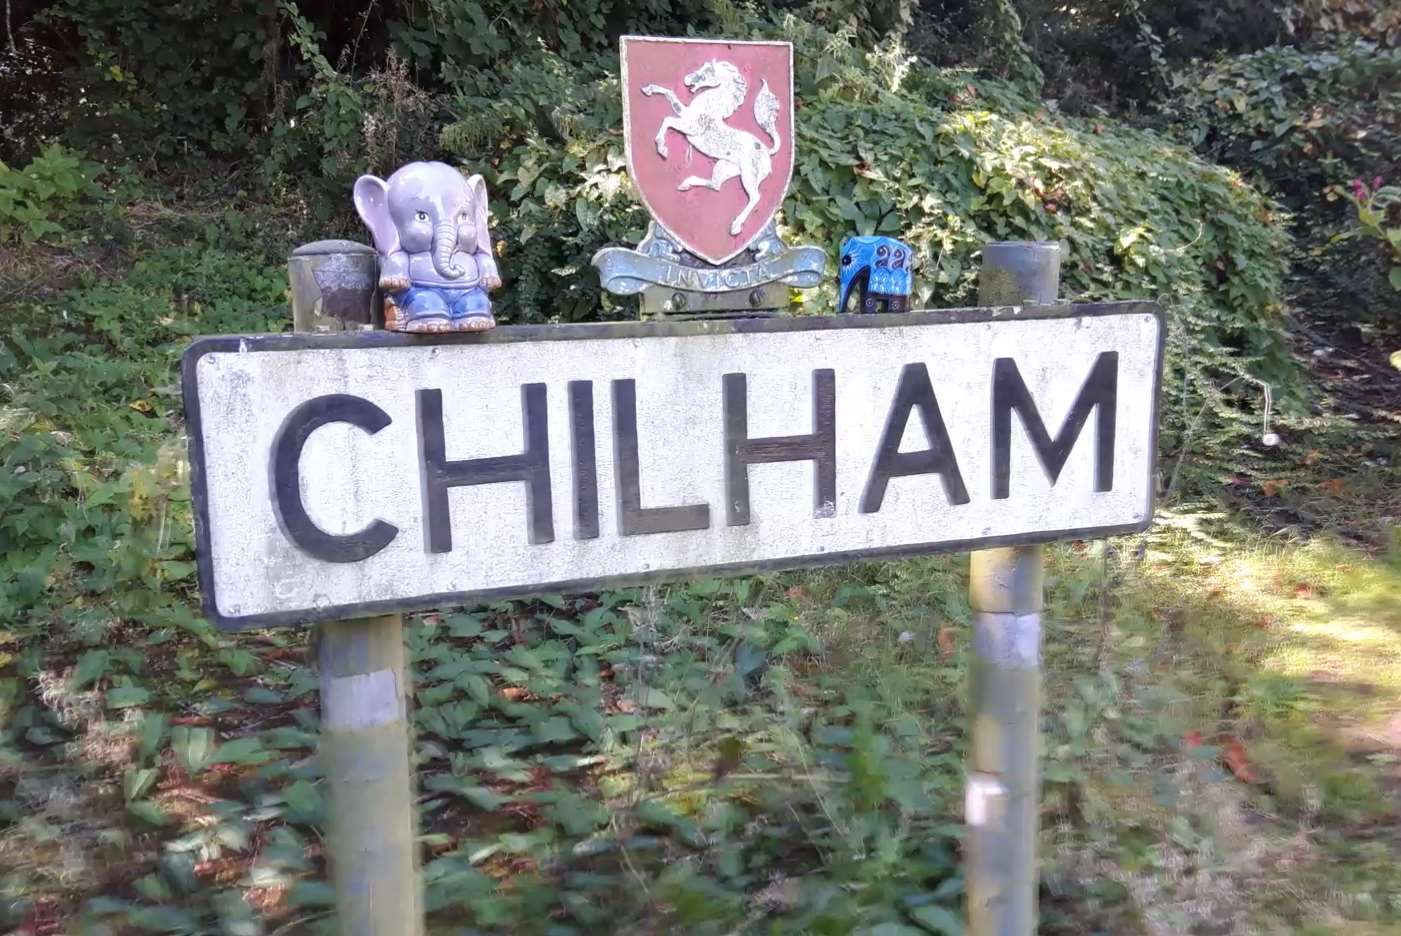 The Chilham sign has a number of the elephants around it.